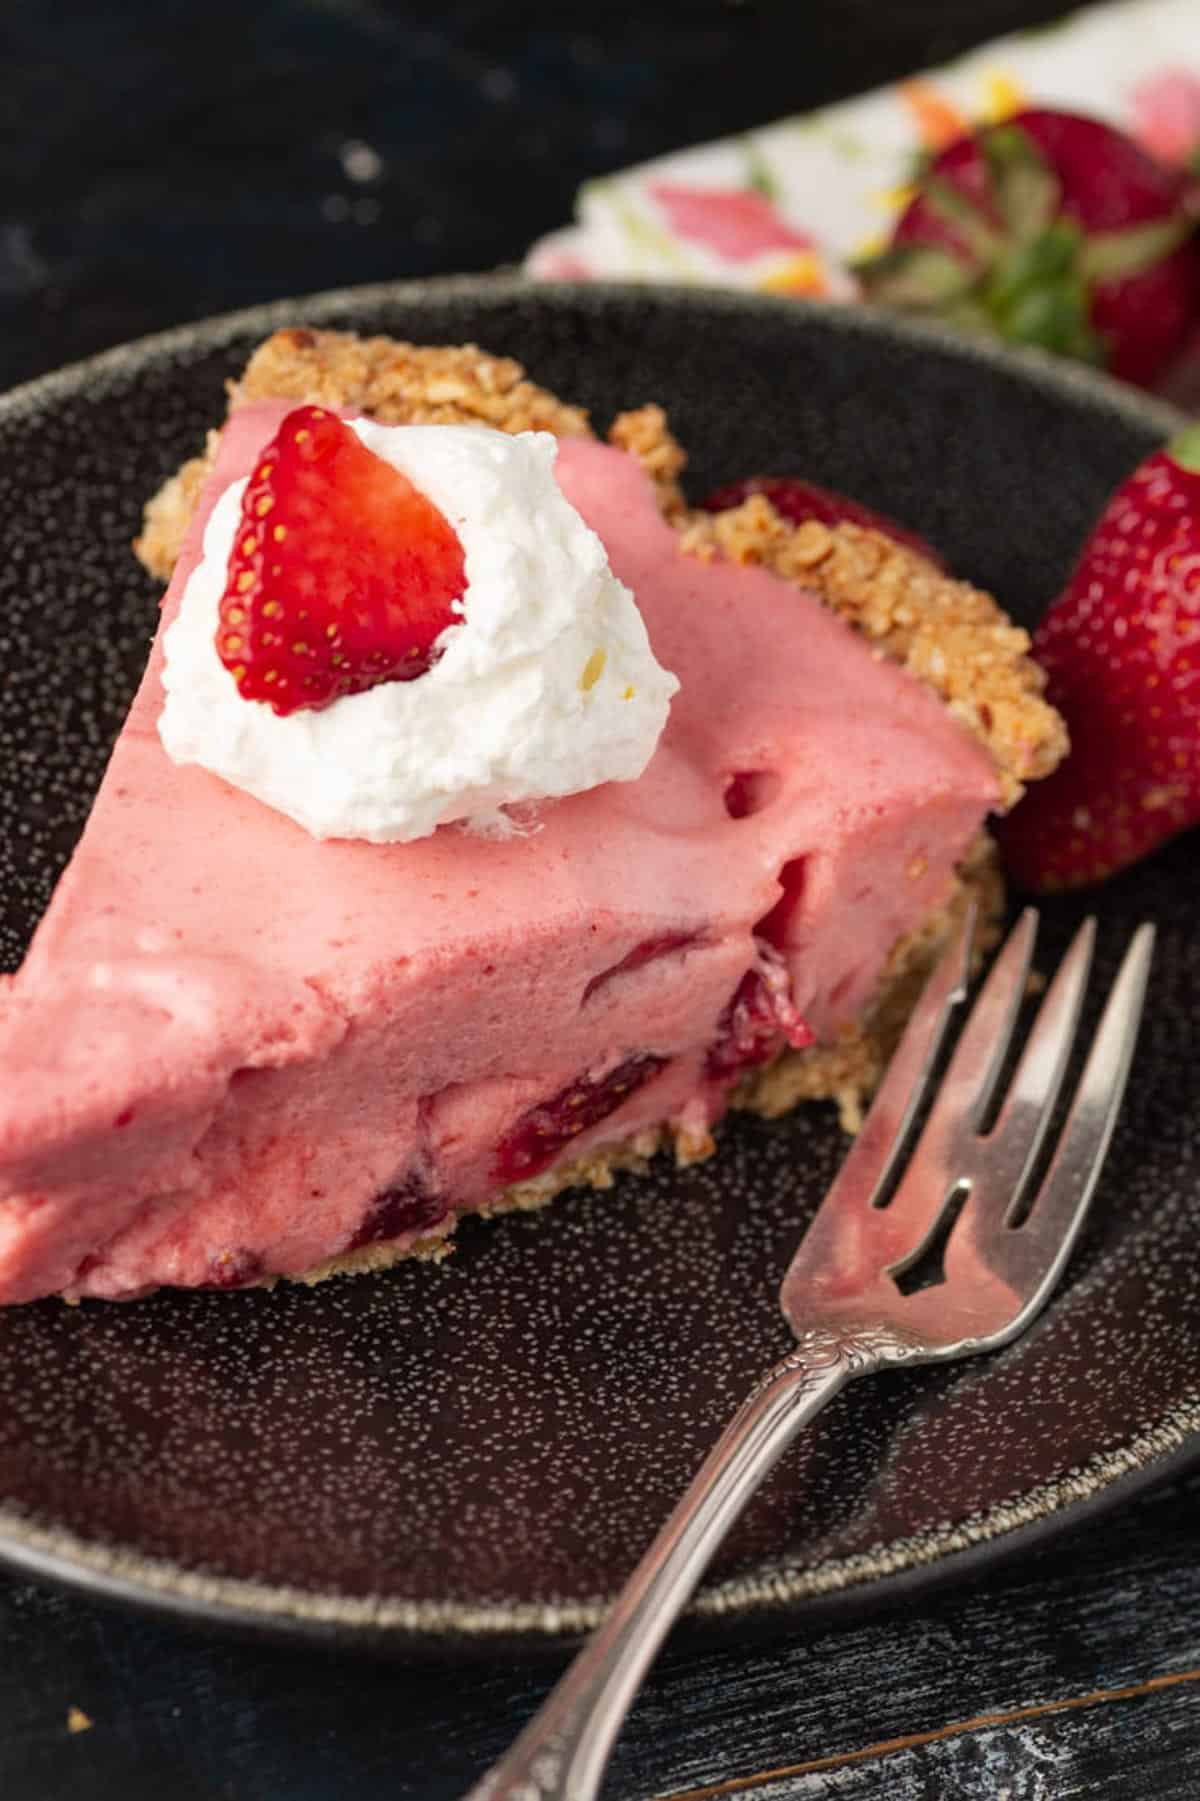 A slice of strawberry pie with a fork on the plate.